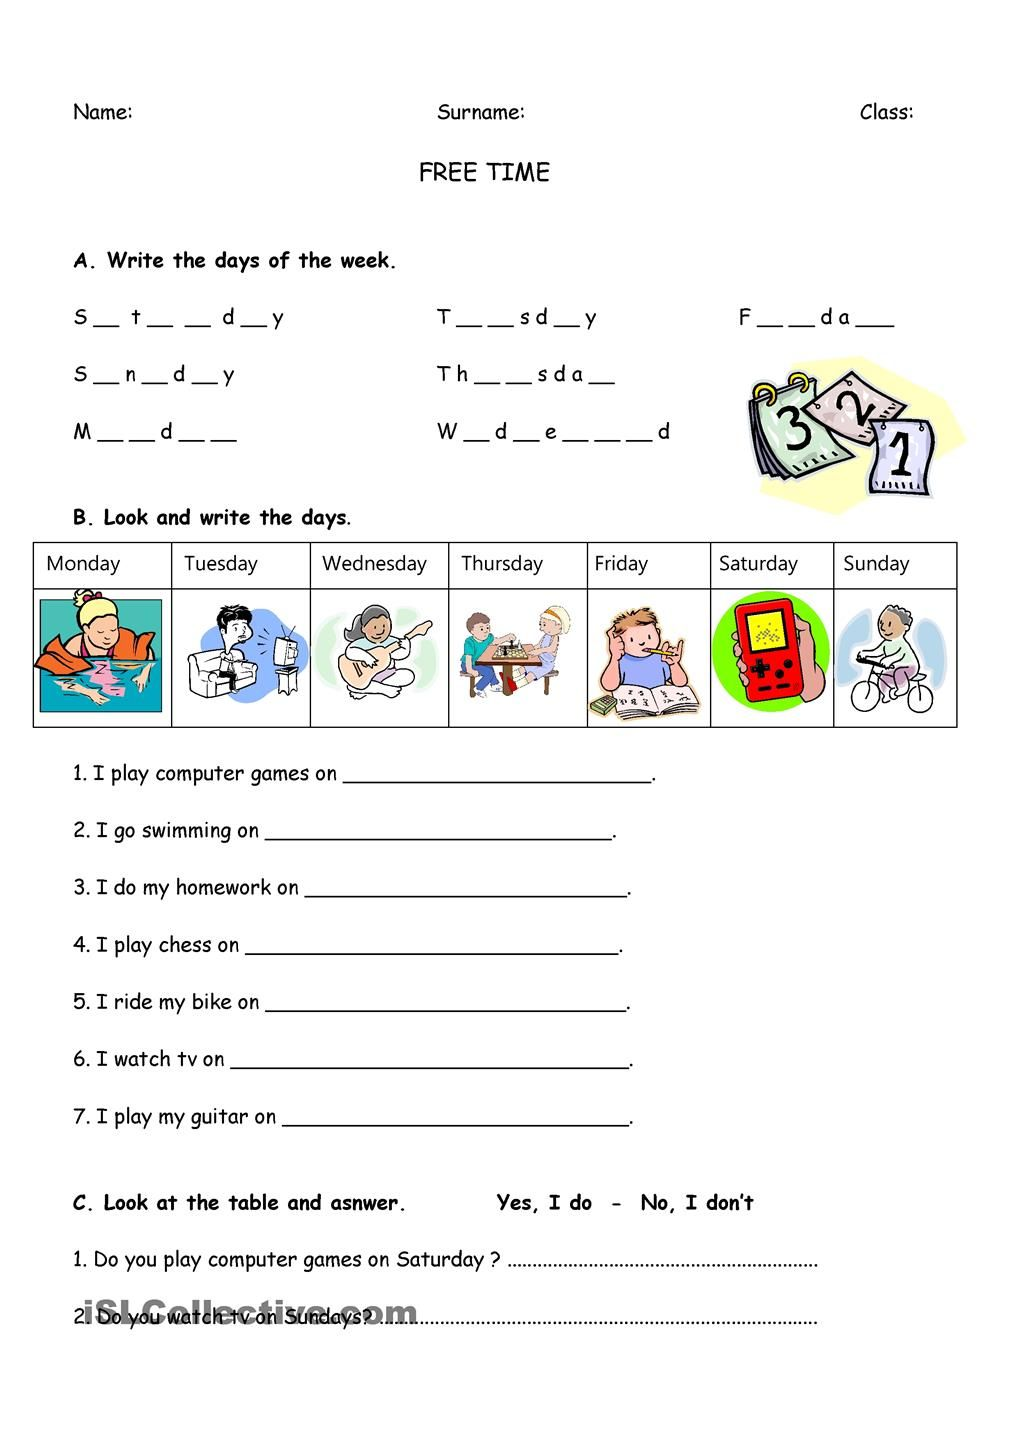 Free Time | ESL worksheets of the day | Pinterest